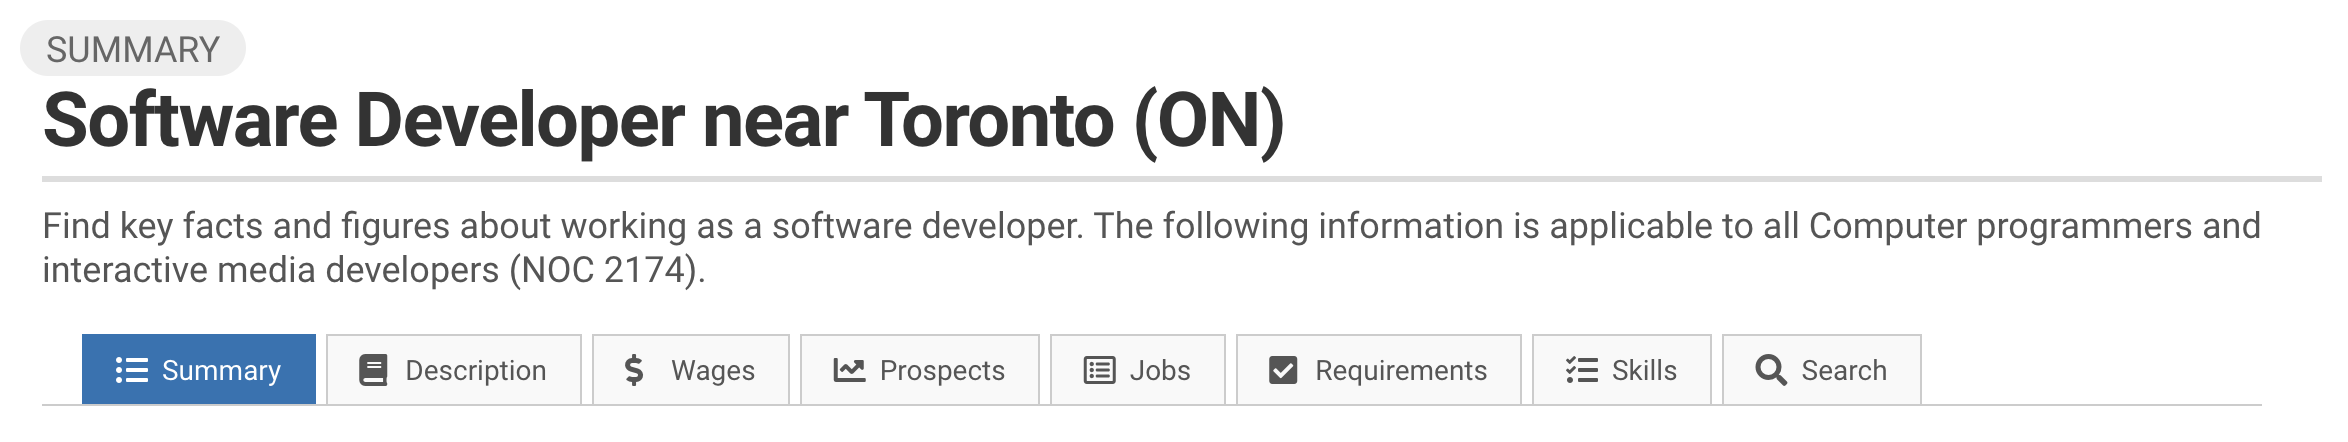 Image showing how to see StatCan trends for Software Developers near Toronto or other cities